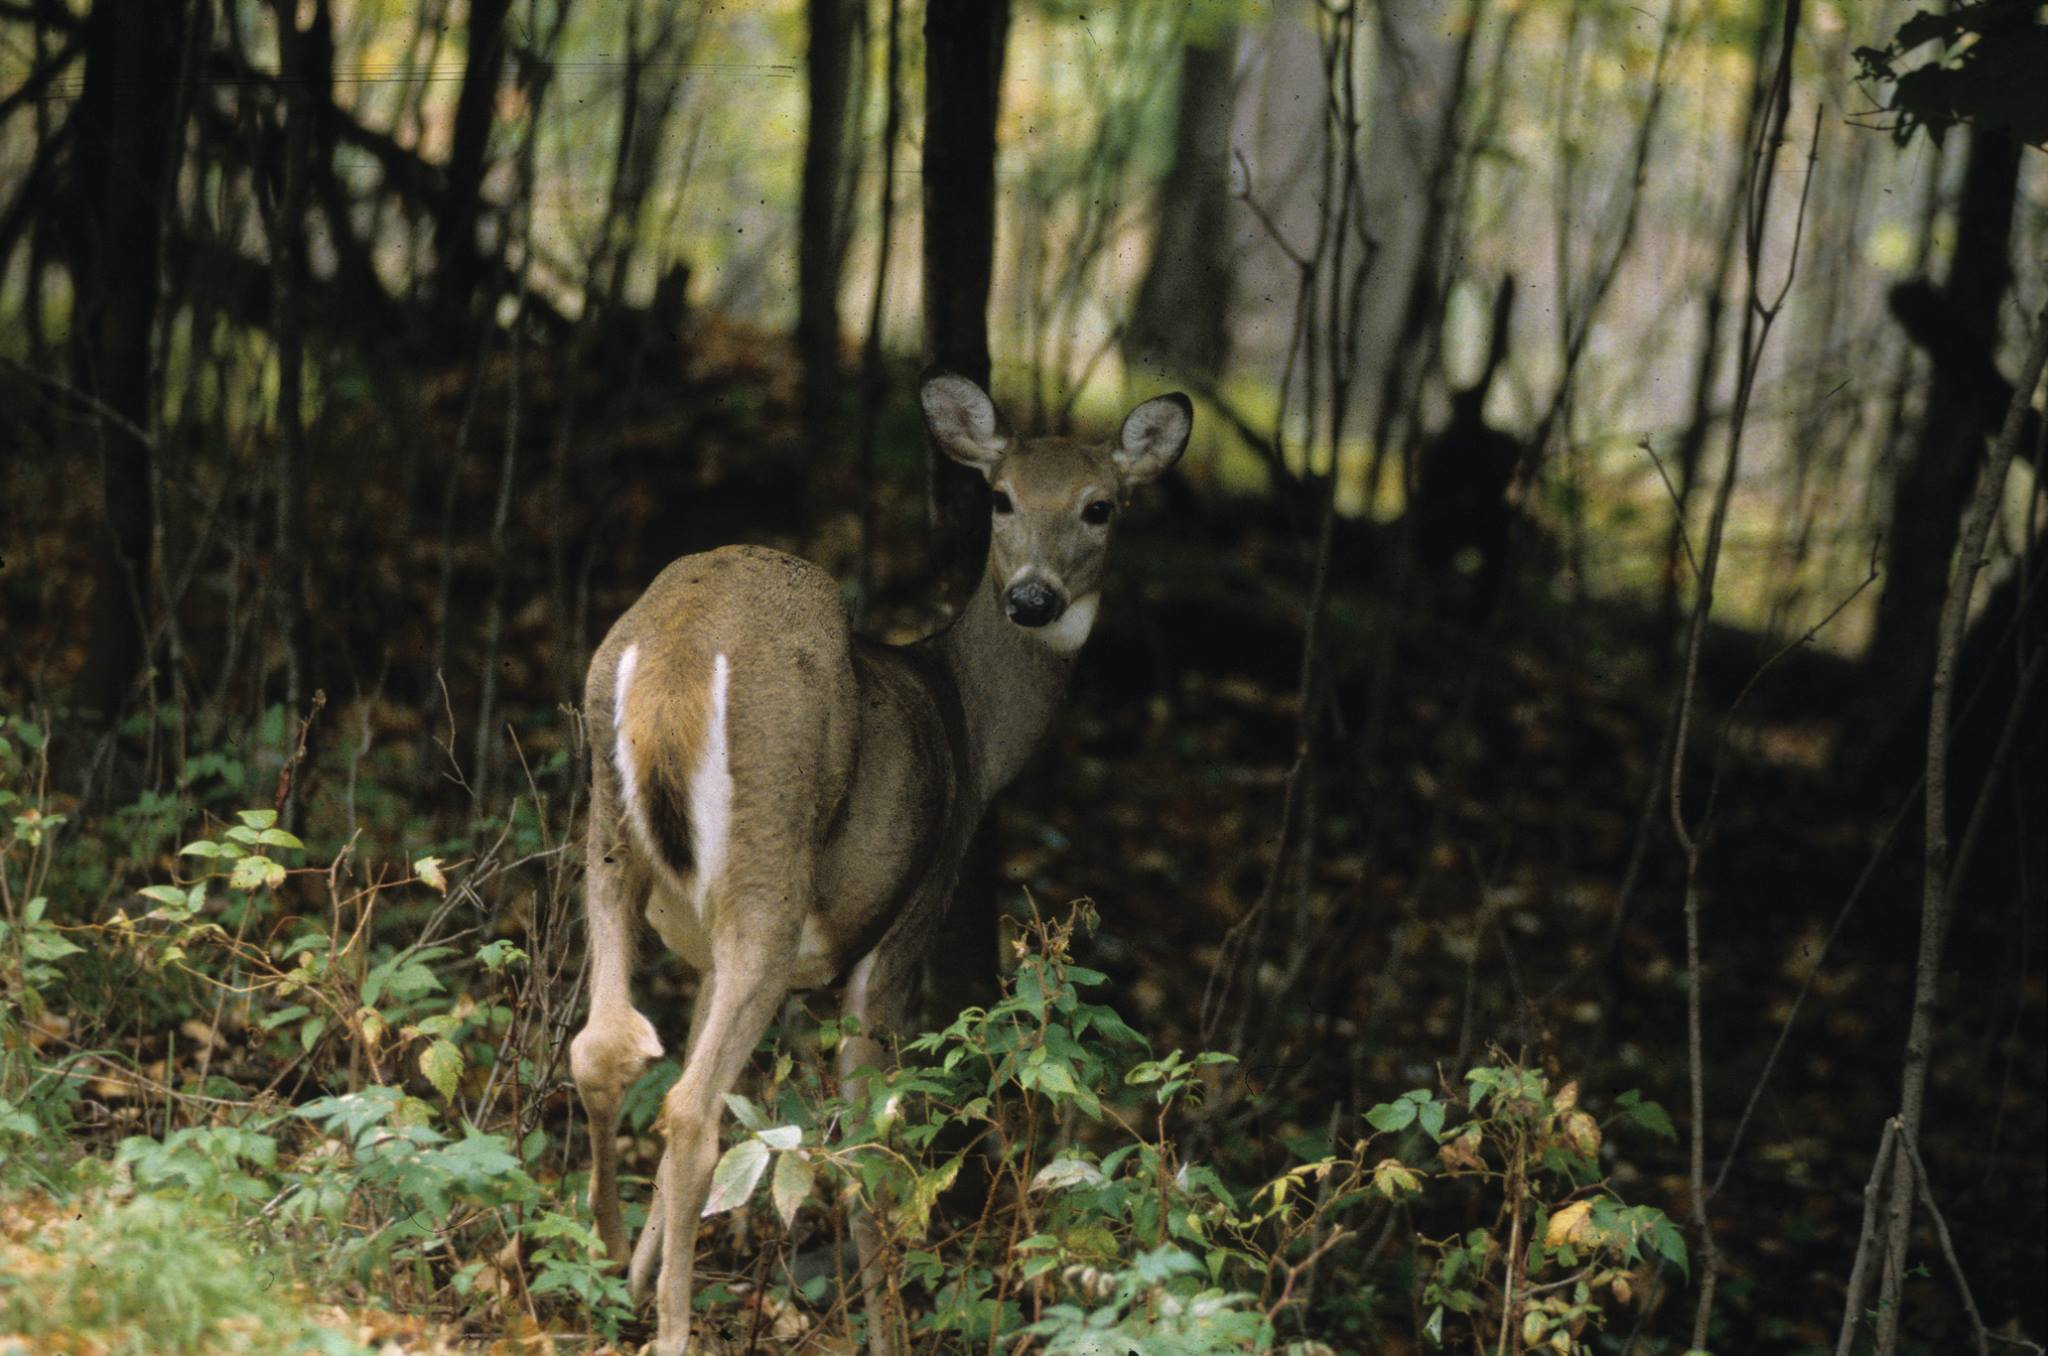 Judge sides with tribes in hunting rights dispute in Wisconsin